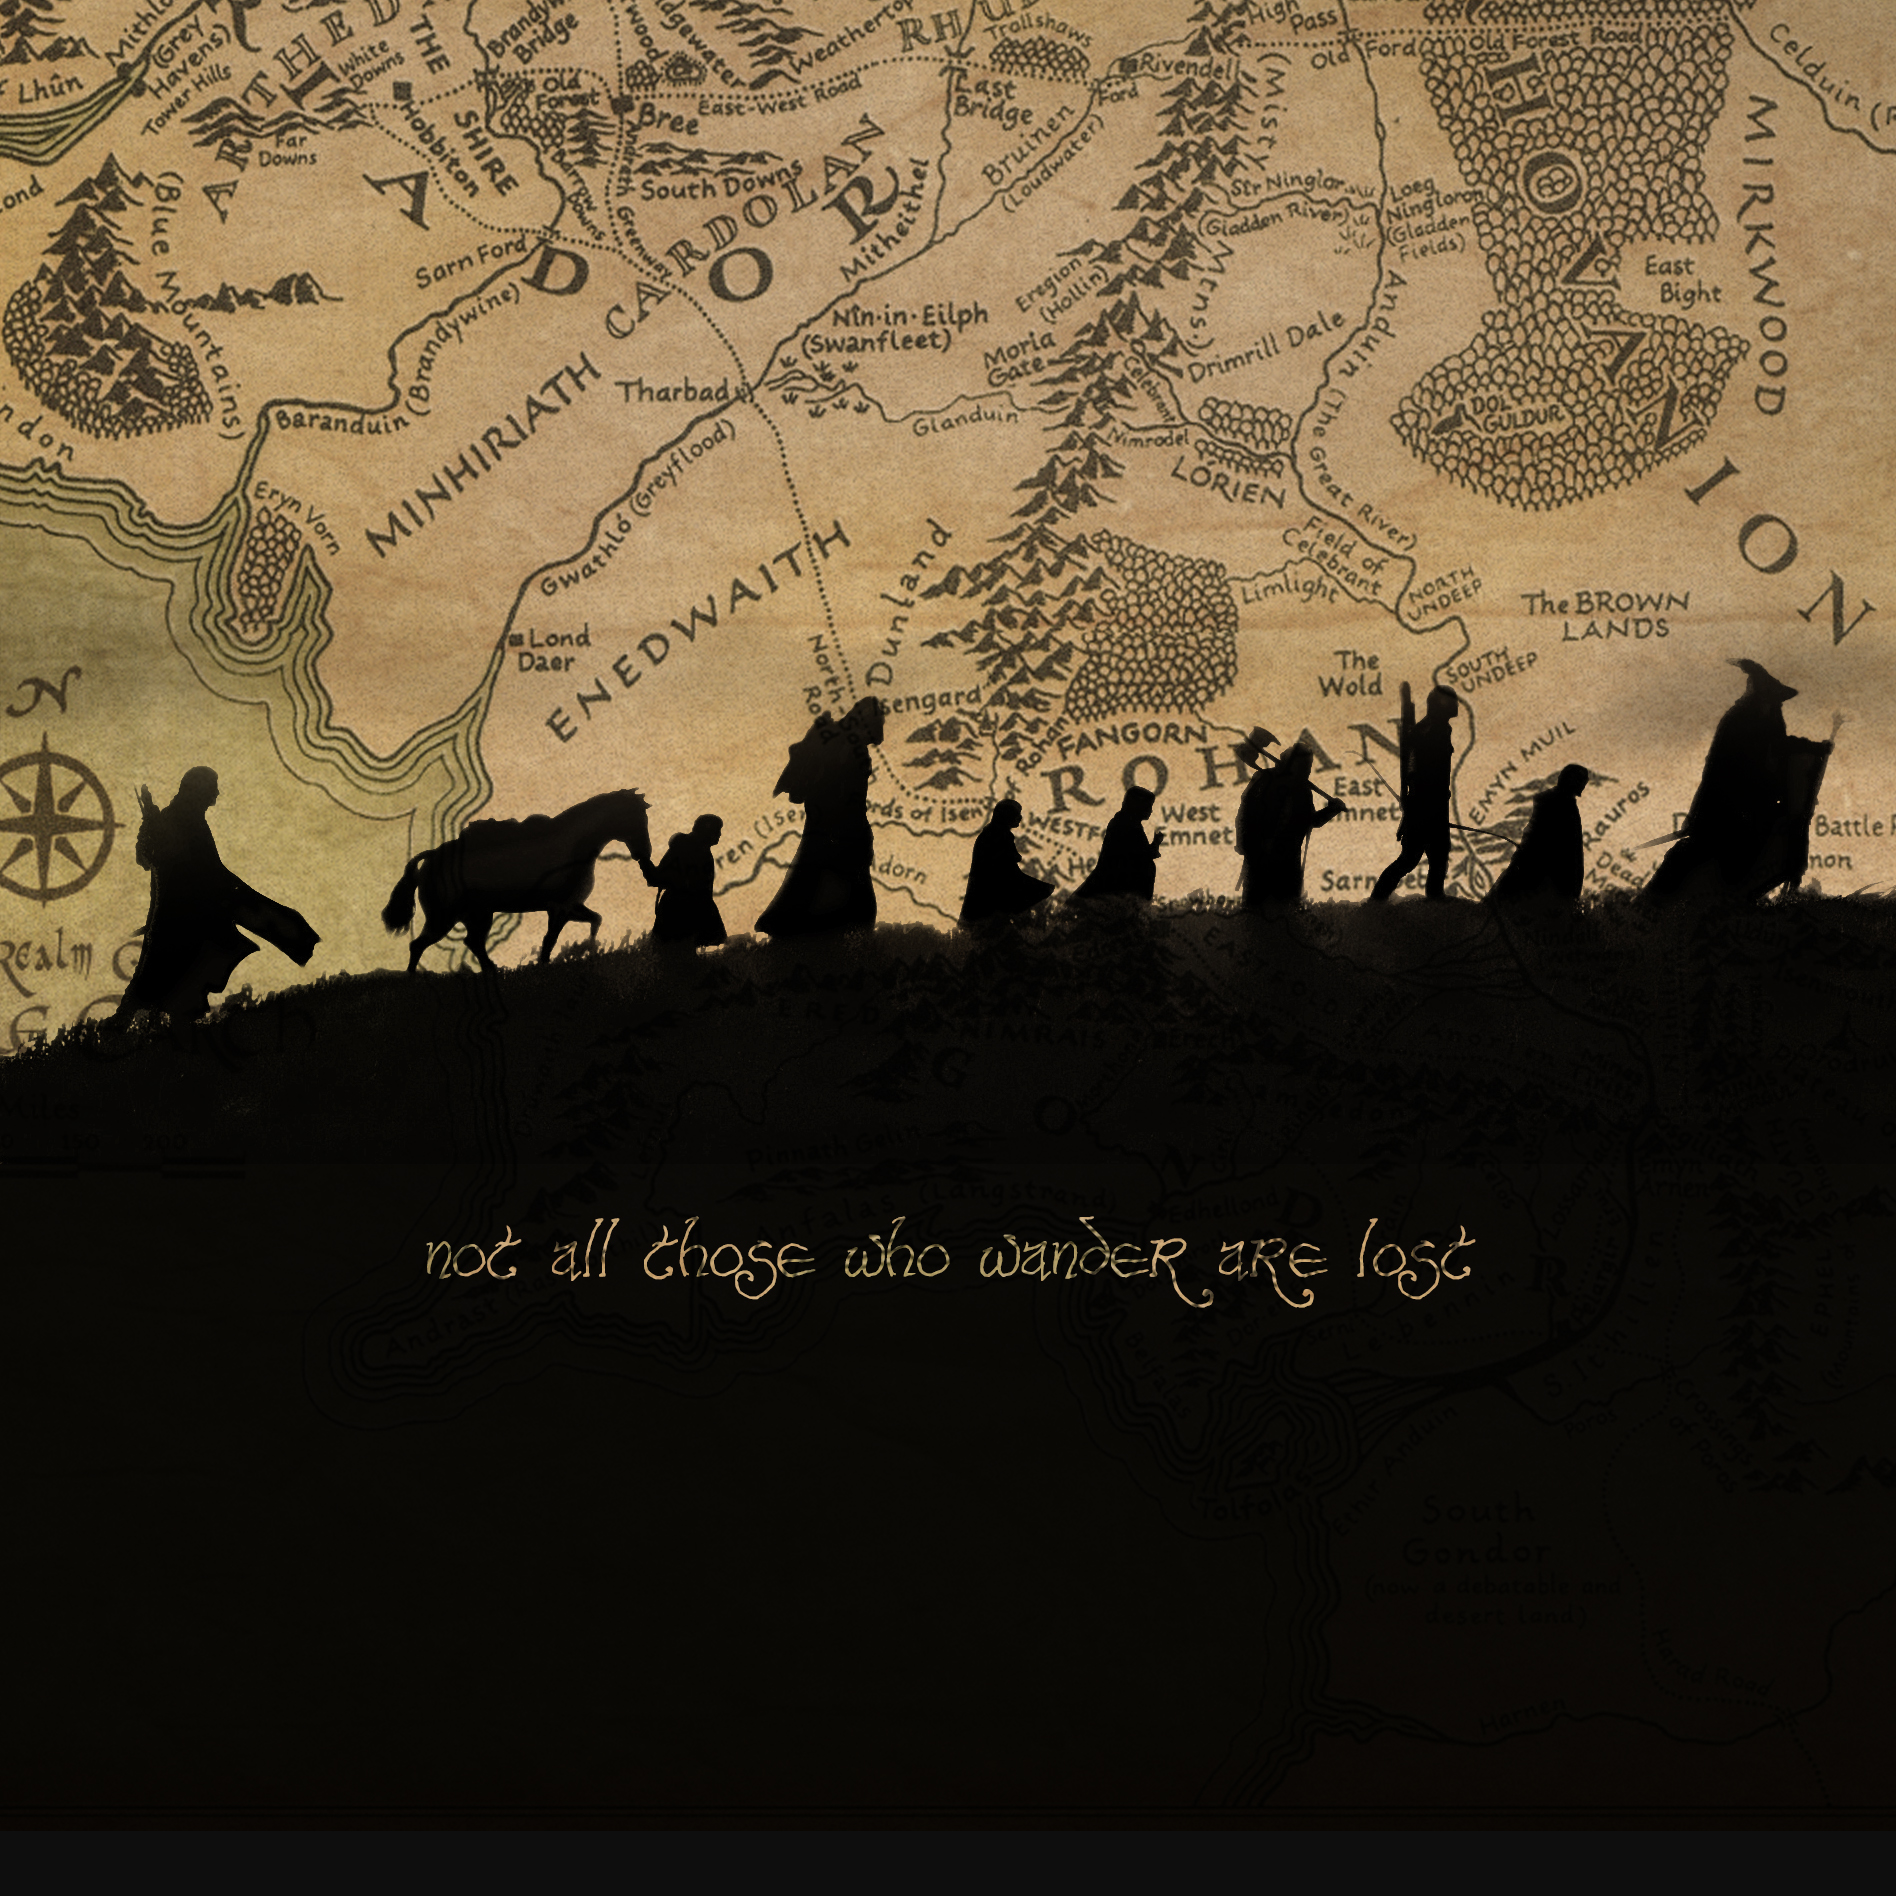 Old Friends Quotes Wallpaper 8tracks Radio Not All Those Who Wander Are Lost 27